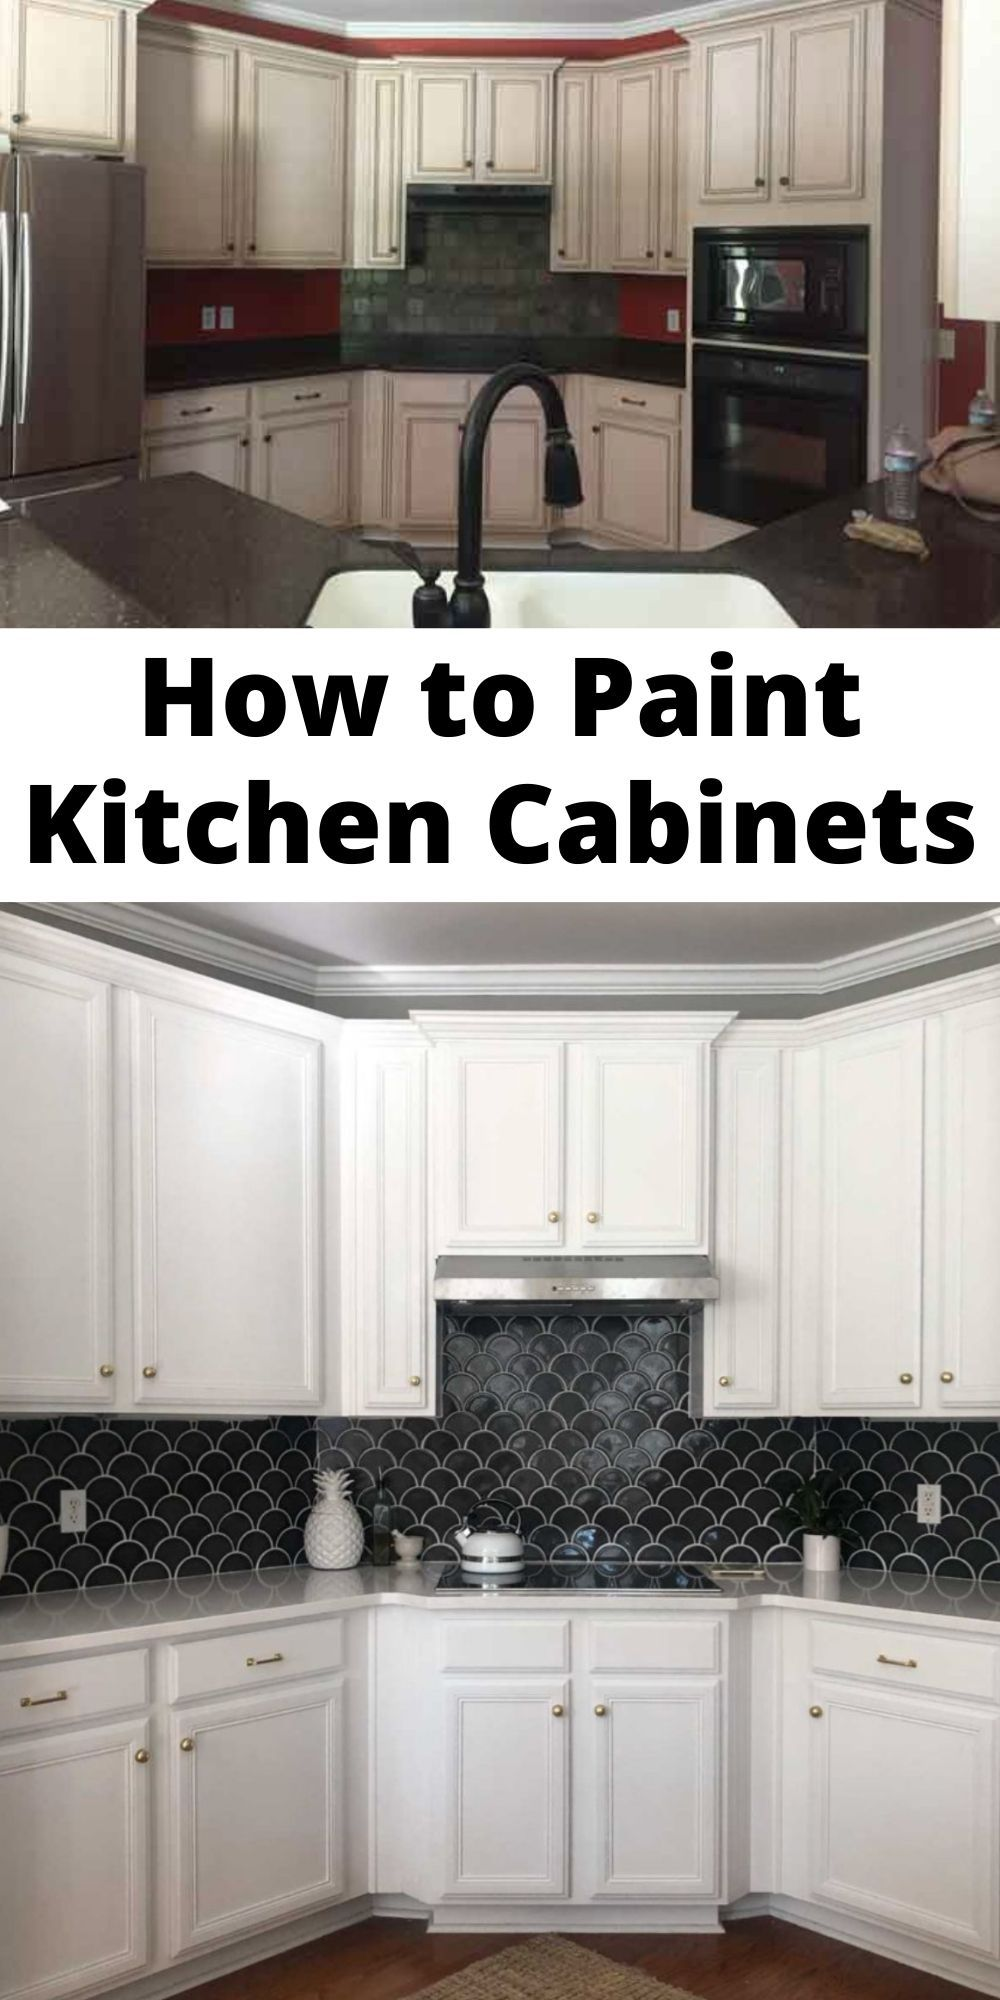 Painting Kitchen Cabinets Is An Inexpensive Way To Update Your Kitchen But It Is A Big Project Le Painting Kitchen Cabinets Kitchen Cabinets Painting Cabinets